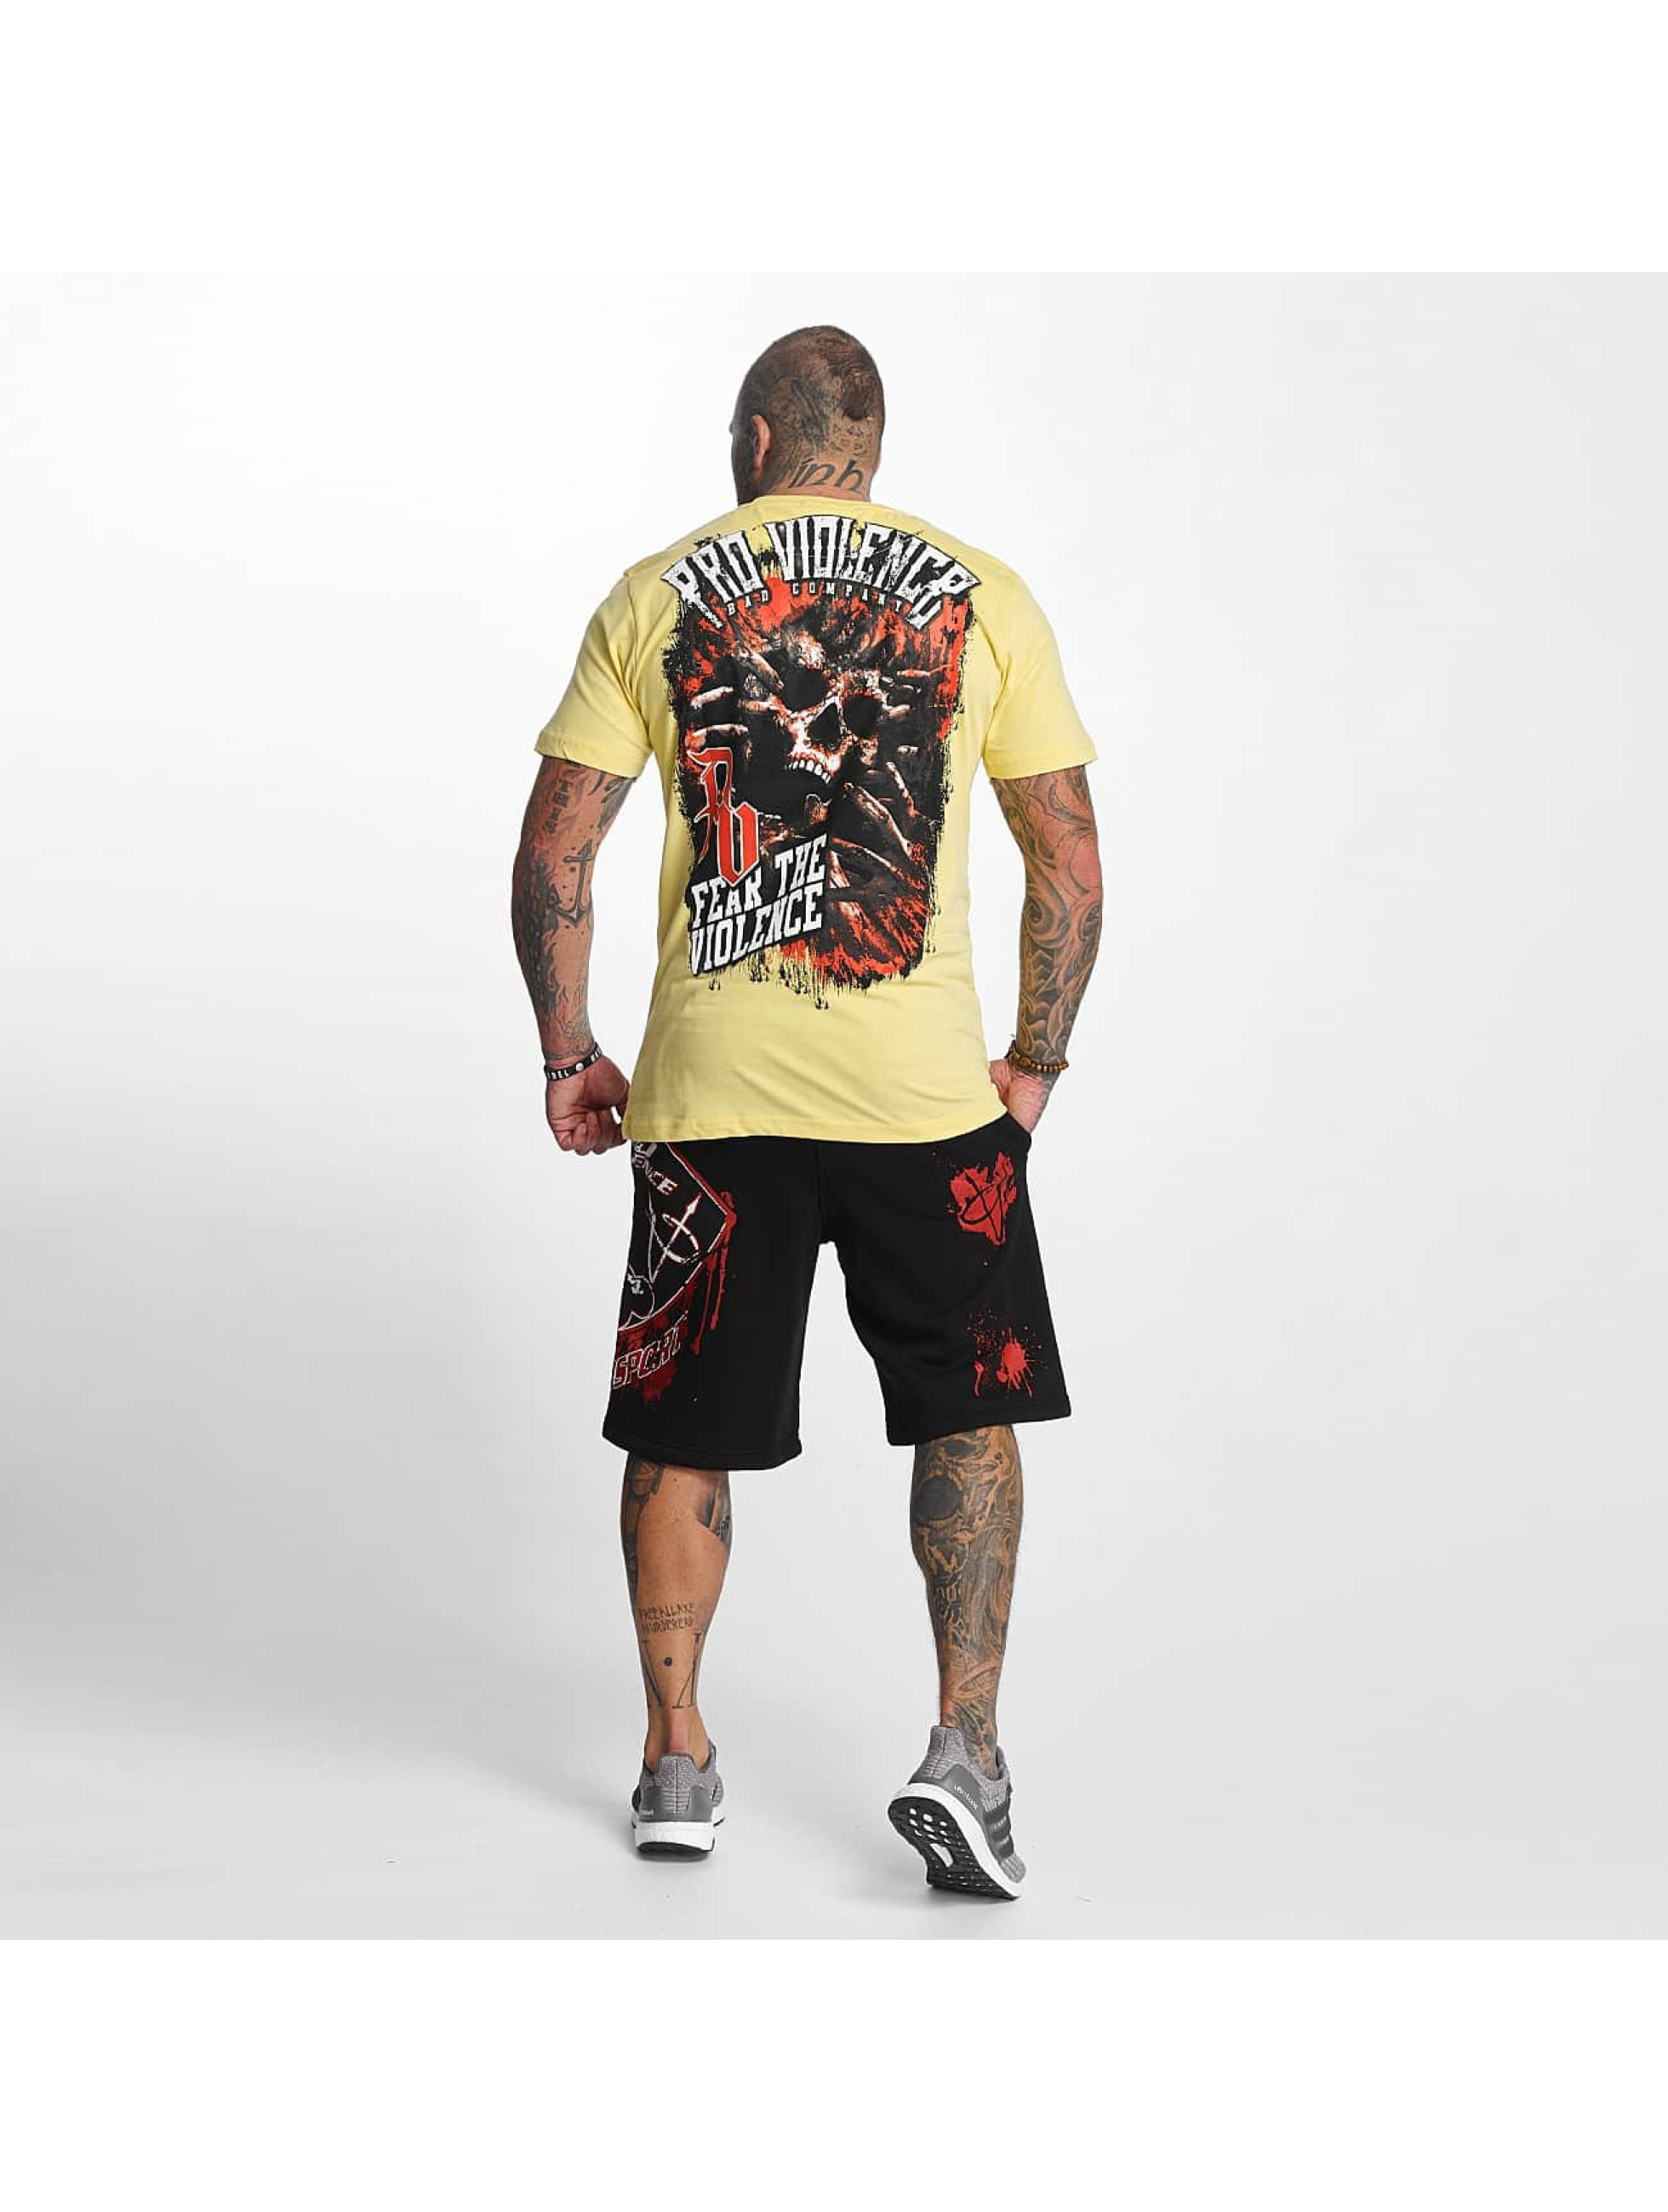 Pro Violence Streetwear T-Shirt The Violence Fear gelb